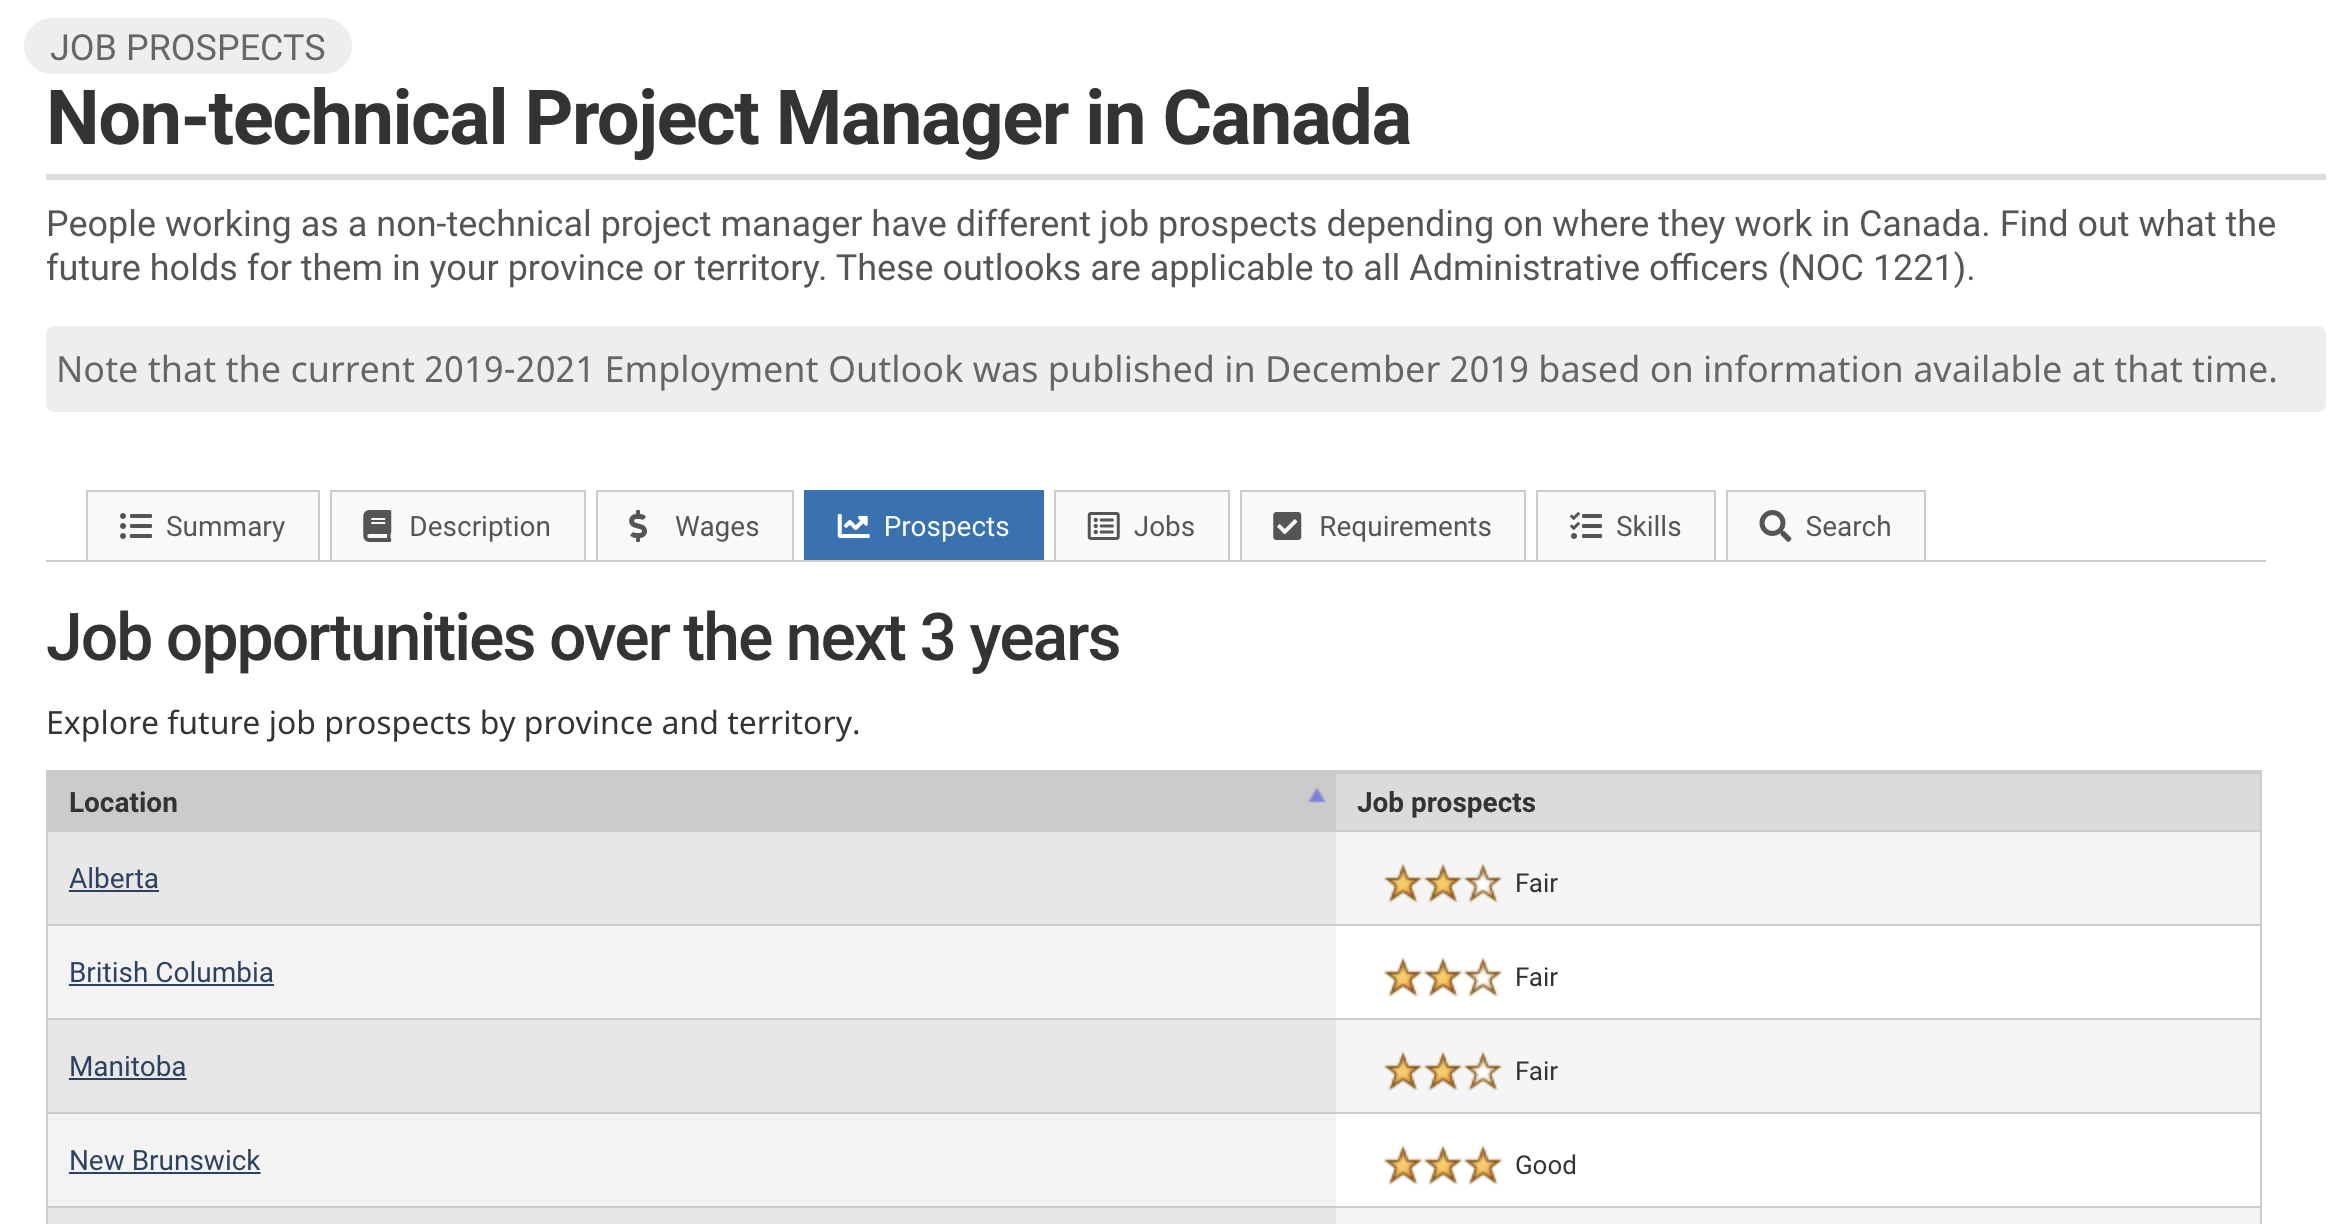 Image showing StatCan job prospects and trends for a Project Manager in Canada